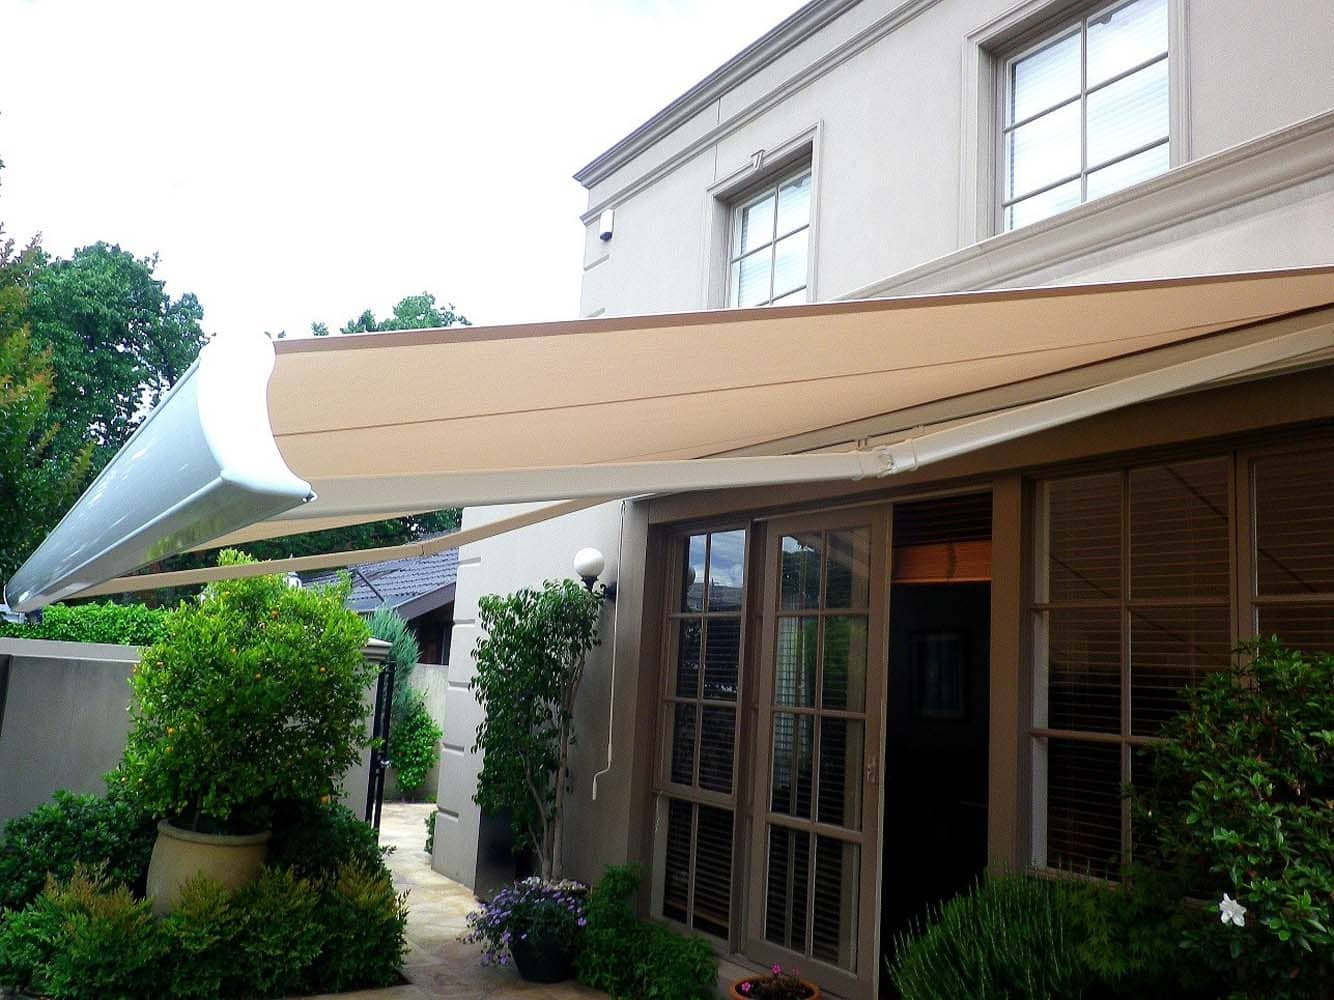 RETRACTABLE AWNING (1)